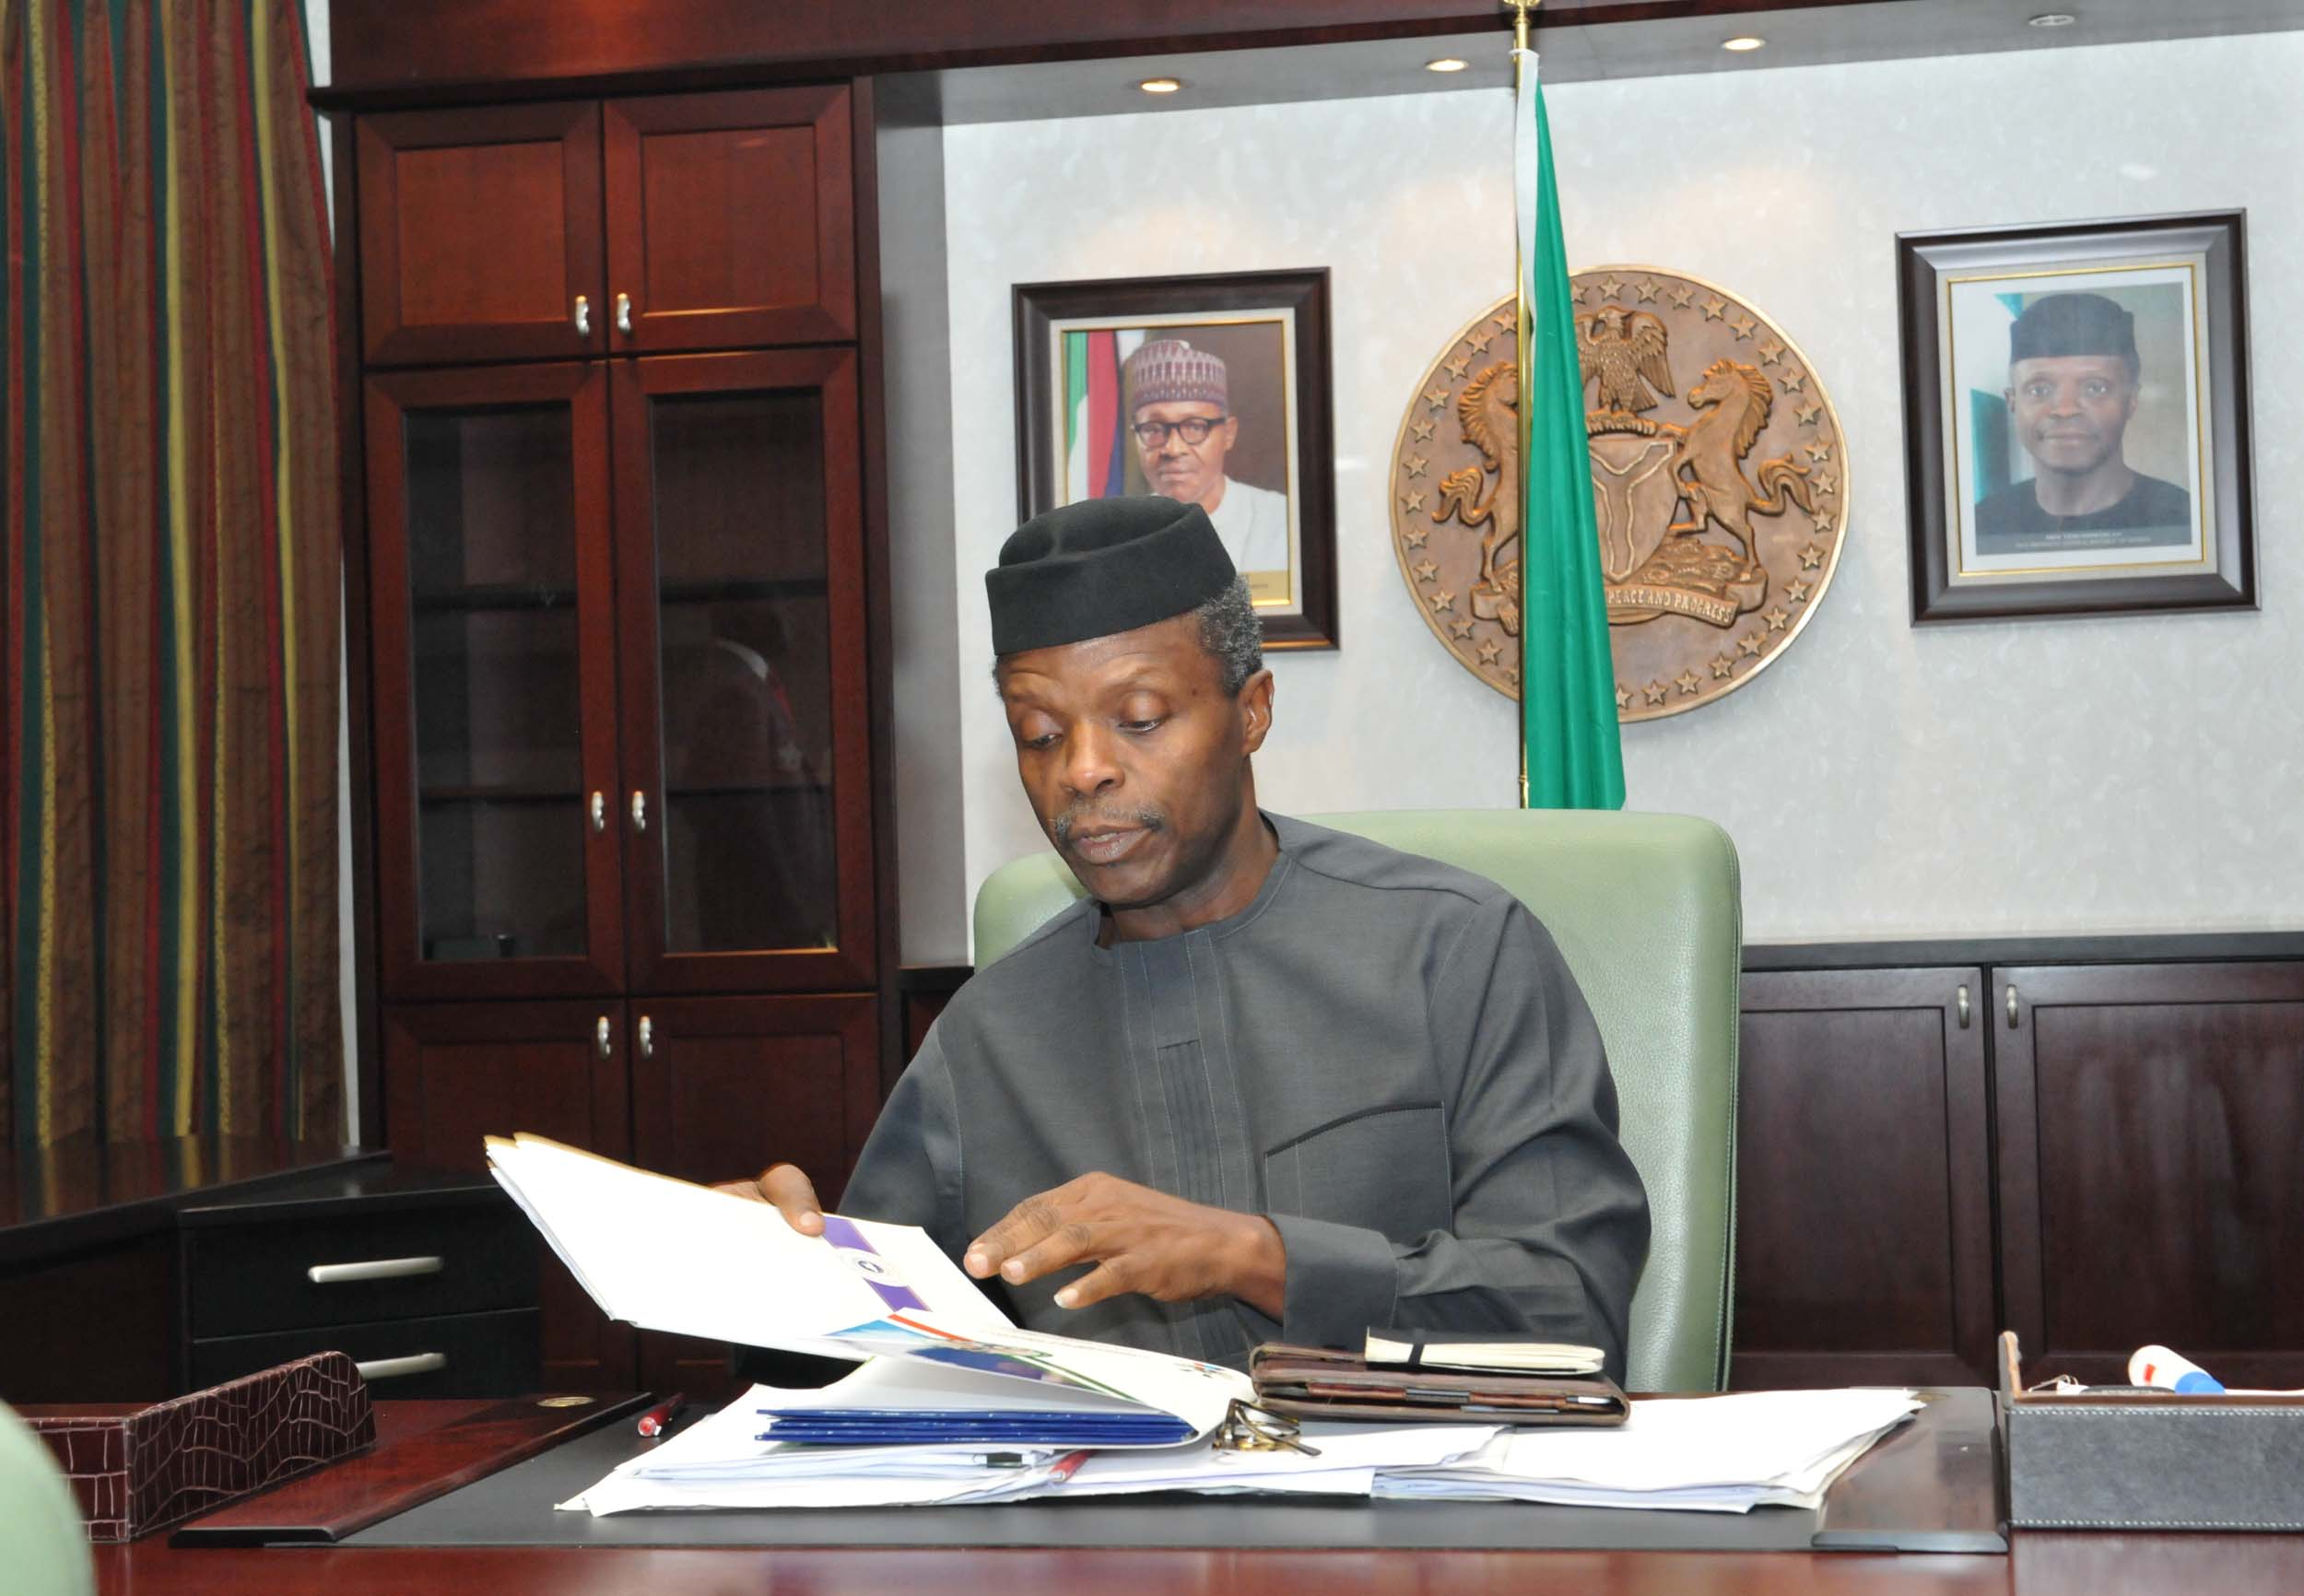 PIC 27. VICE PRESIDENT YEMI OSINBAJO GOING THROUGH  FILES AS HE ASSUMES OFFICE  AT THE PRESIDENTIAL VILLA IN ABUJA ON MONDAY(22/6/15). 4057/22/6/2015/ISE/CH/NAN